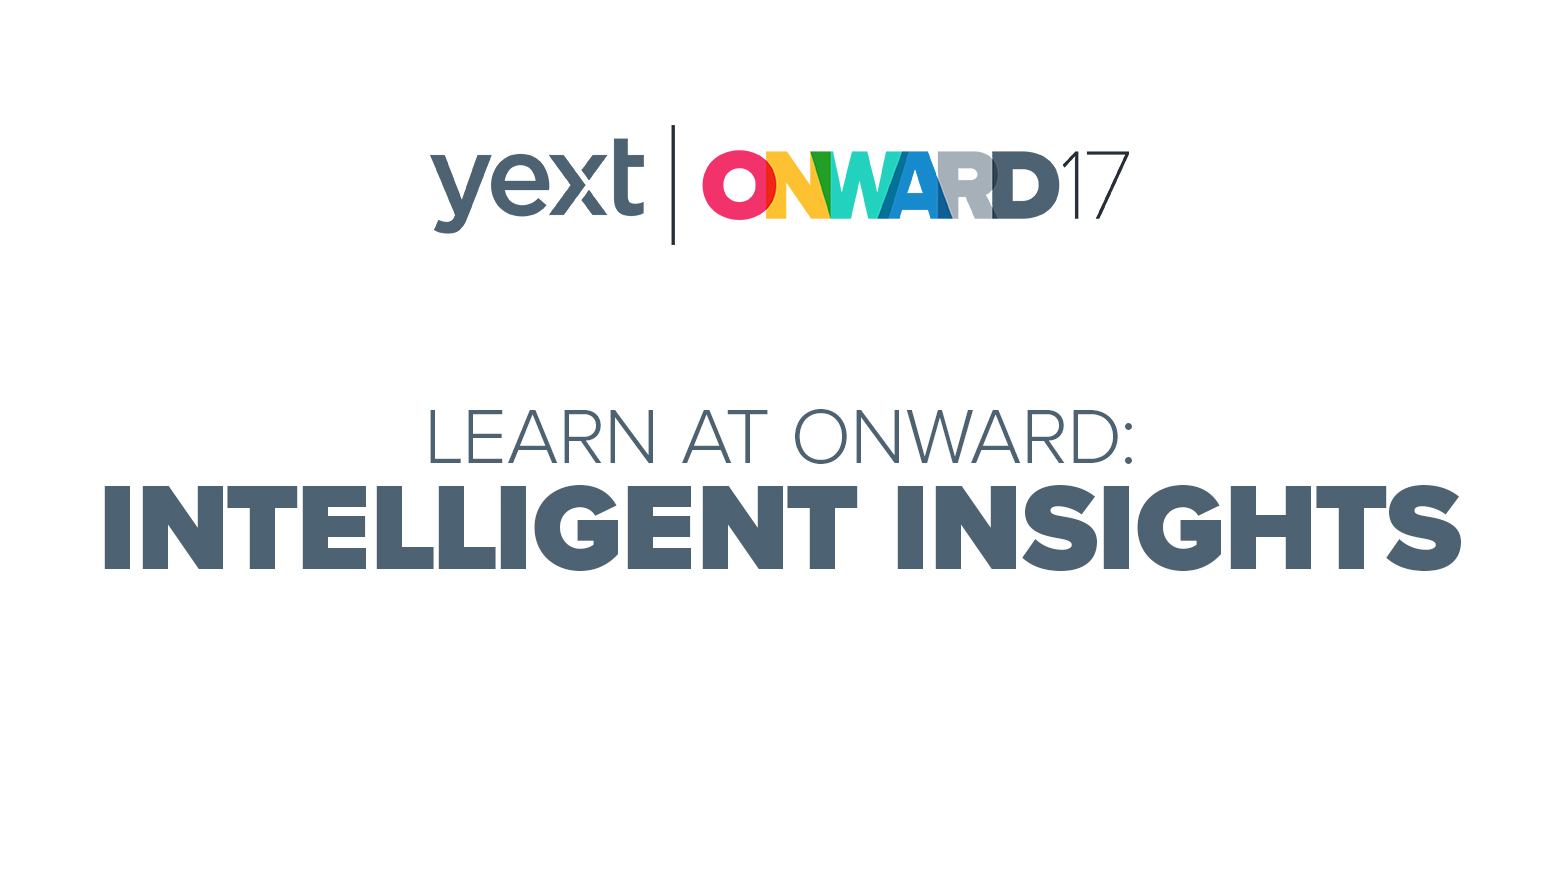 ONWARD yext intelligent insights